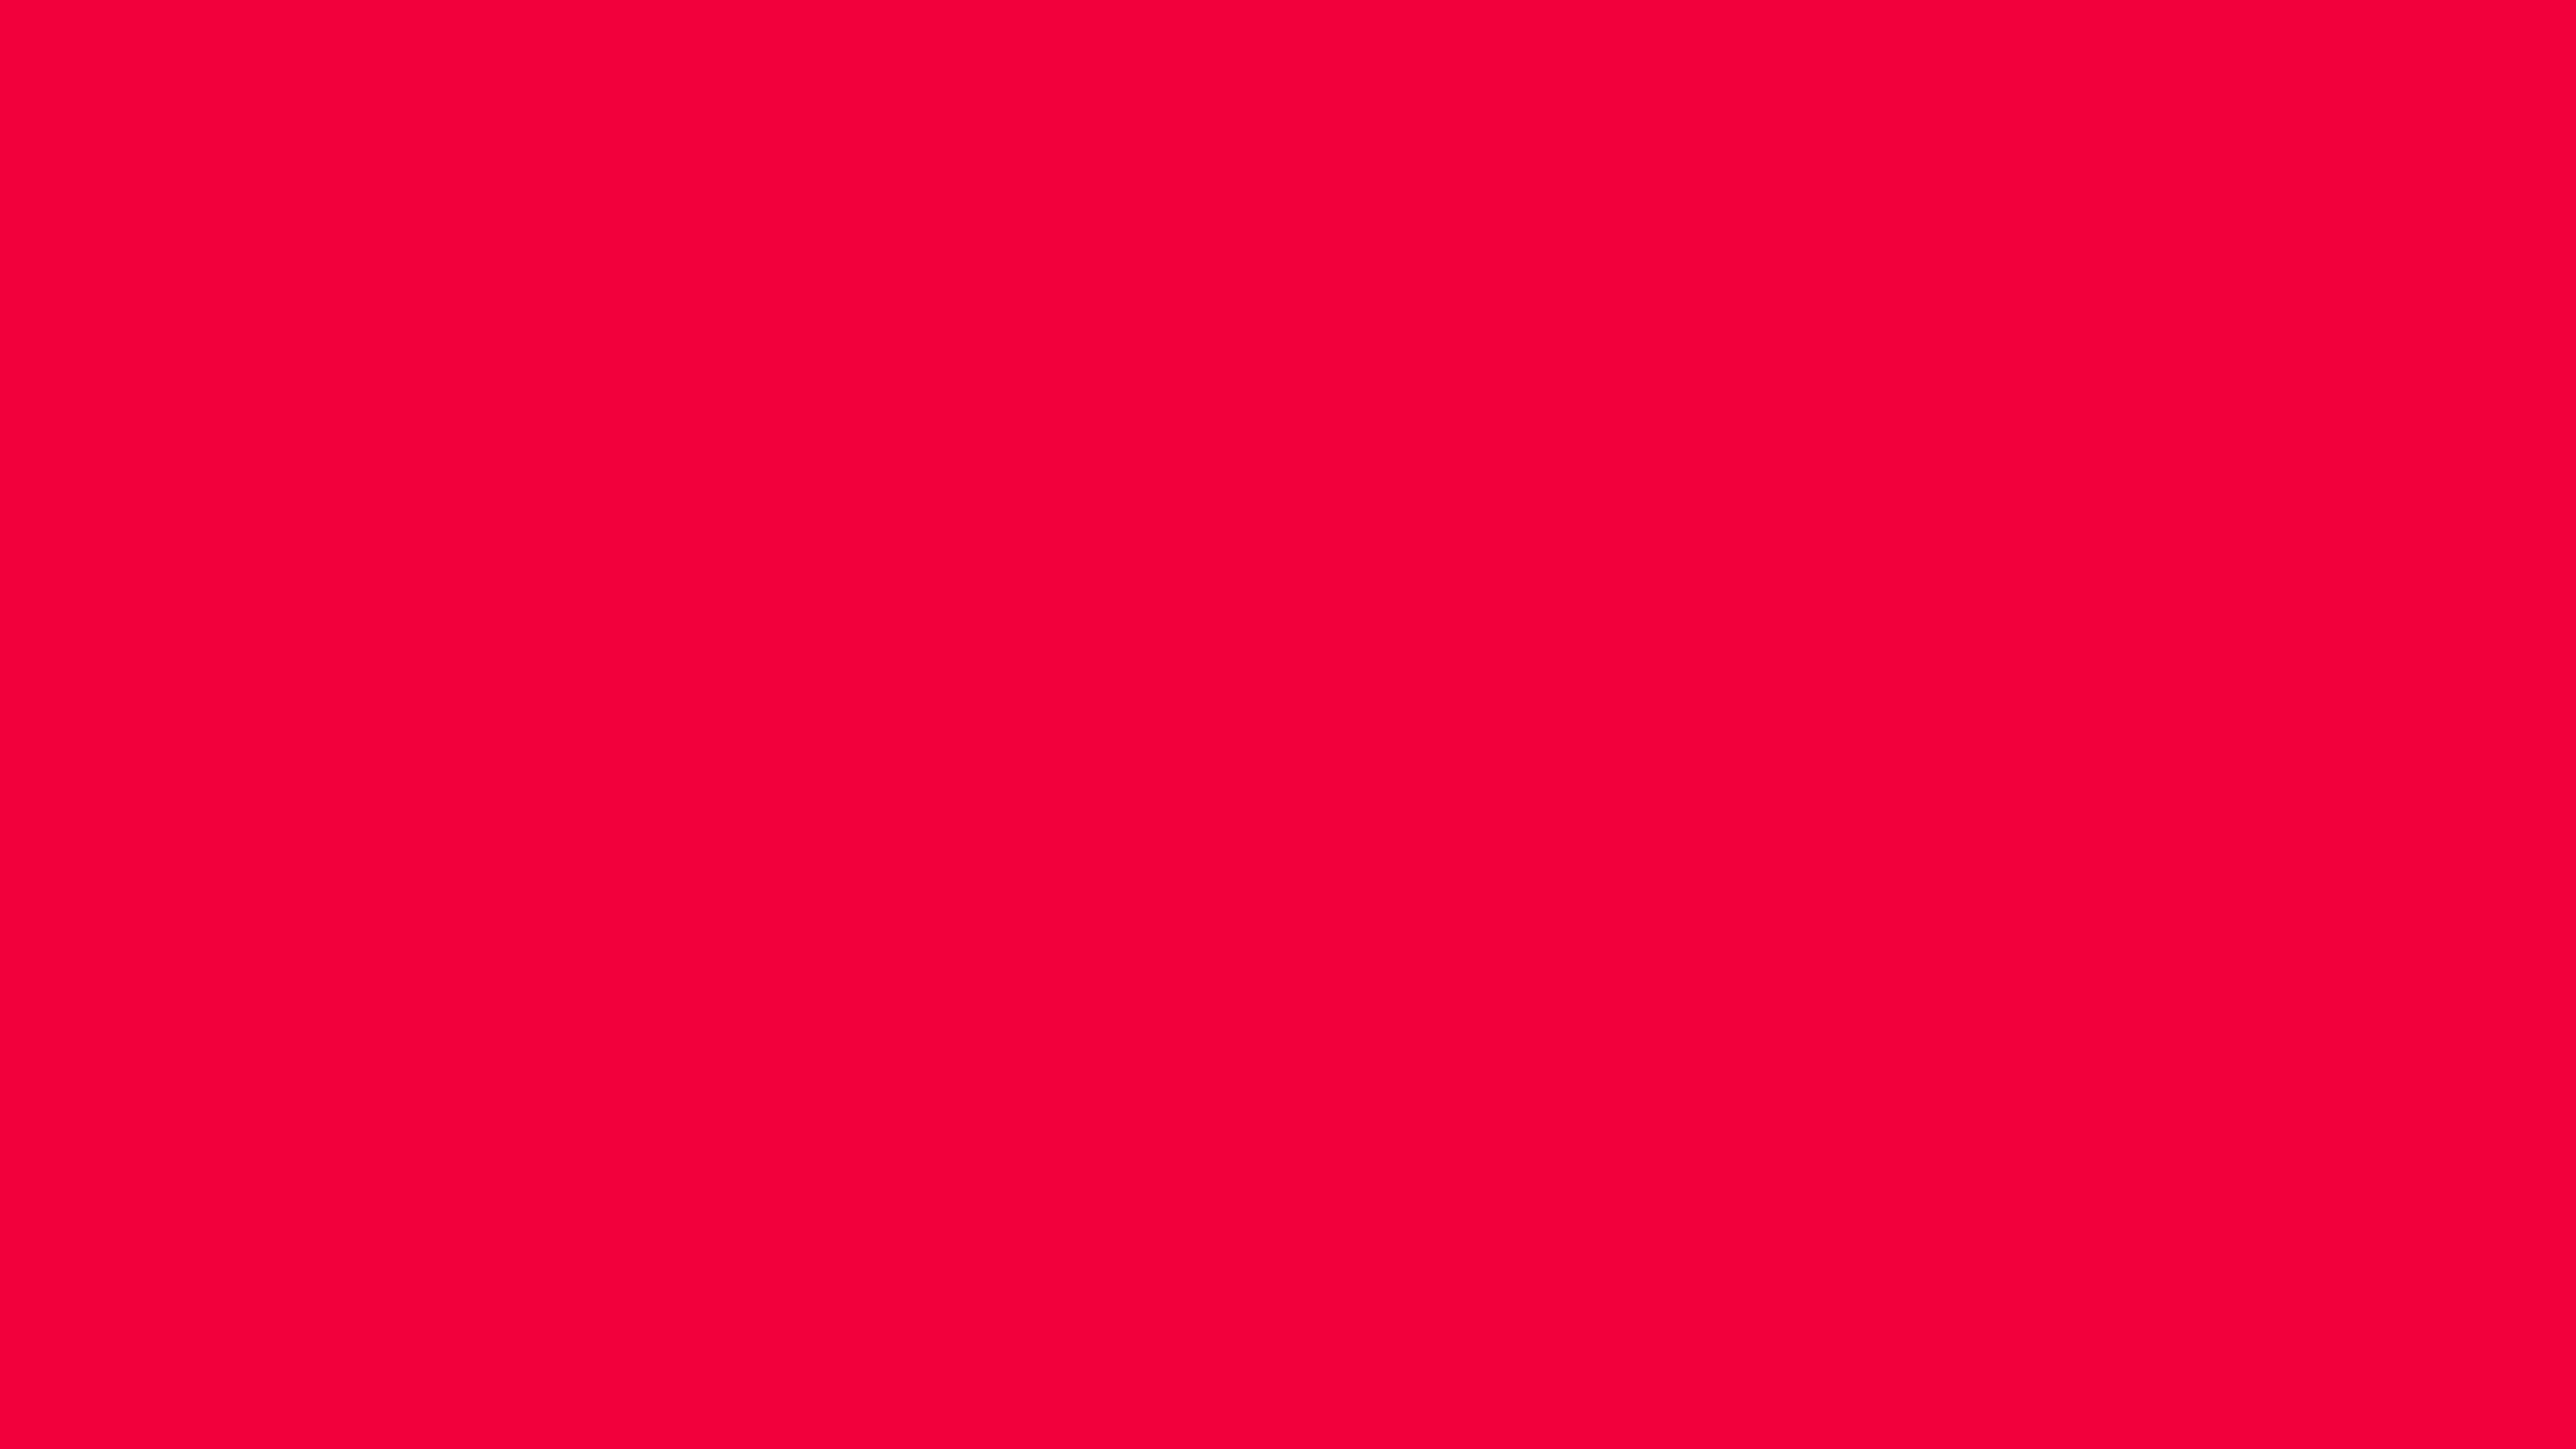 3840x2160 Red Munsell Solid Color Background